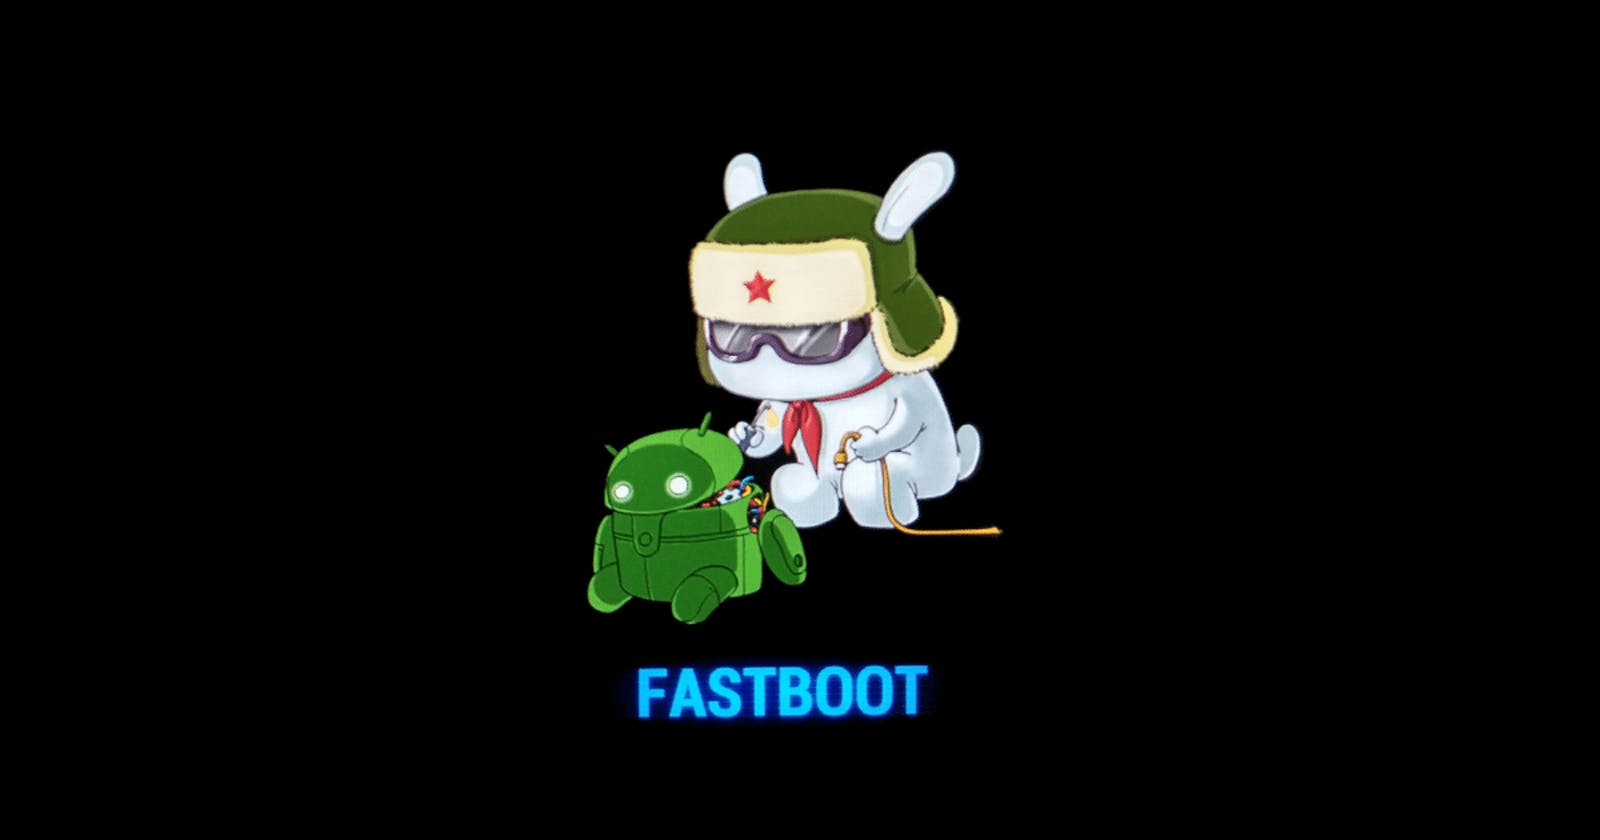 How to make fastboot work with USB 3.0